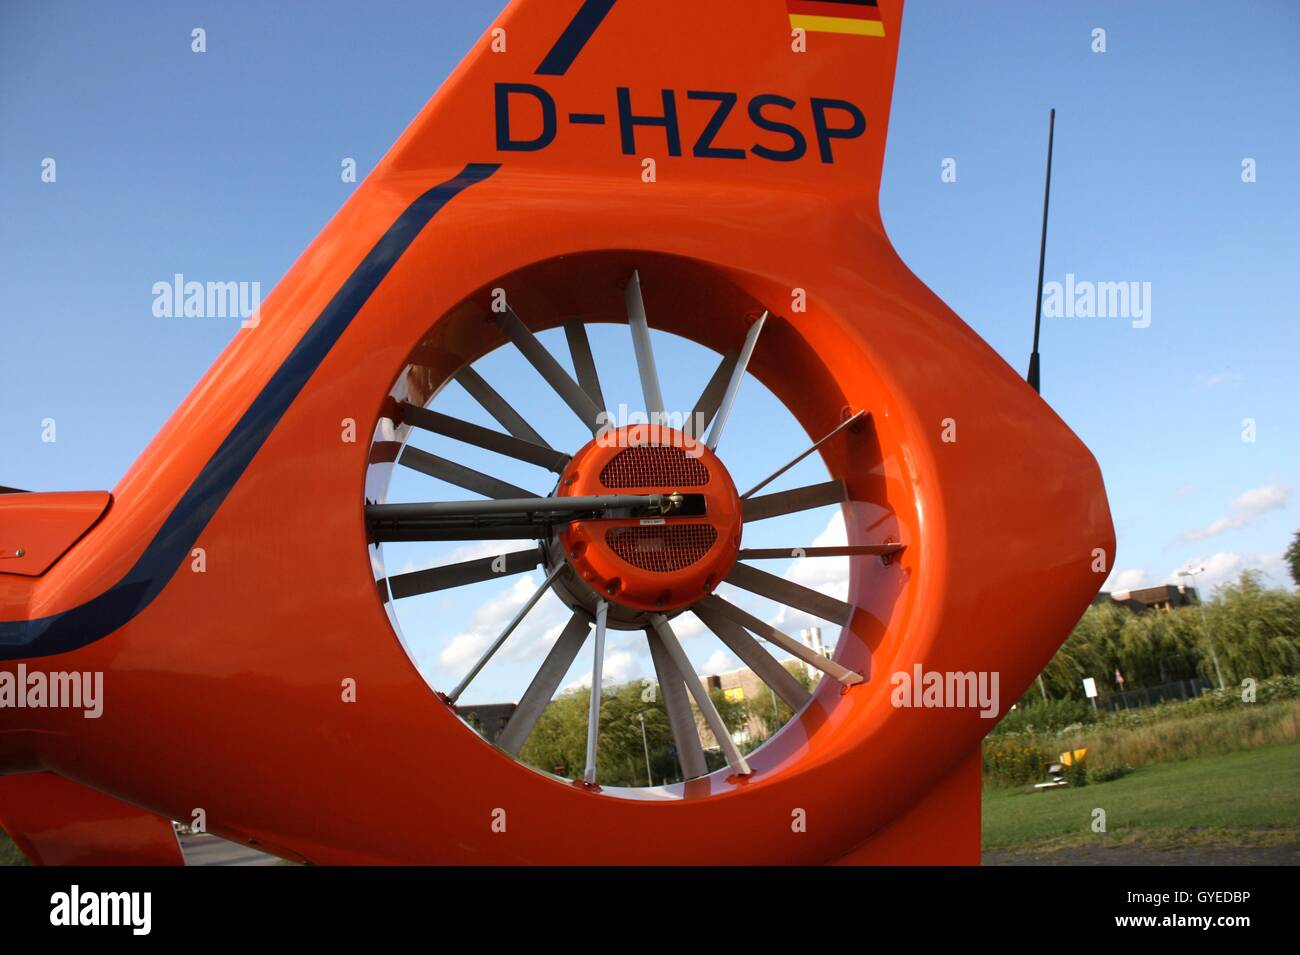 heli, helicopter, copter, rescure, aid, health - Stock Image